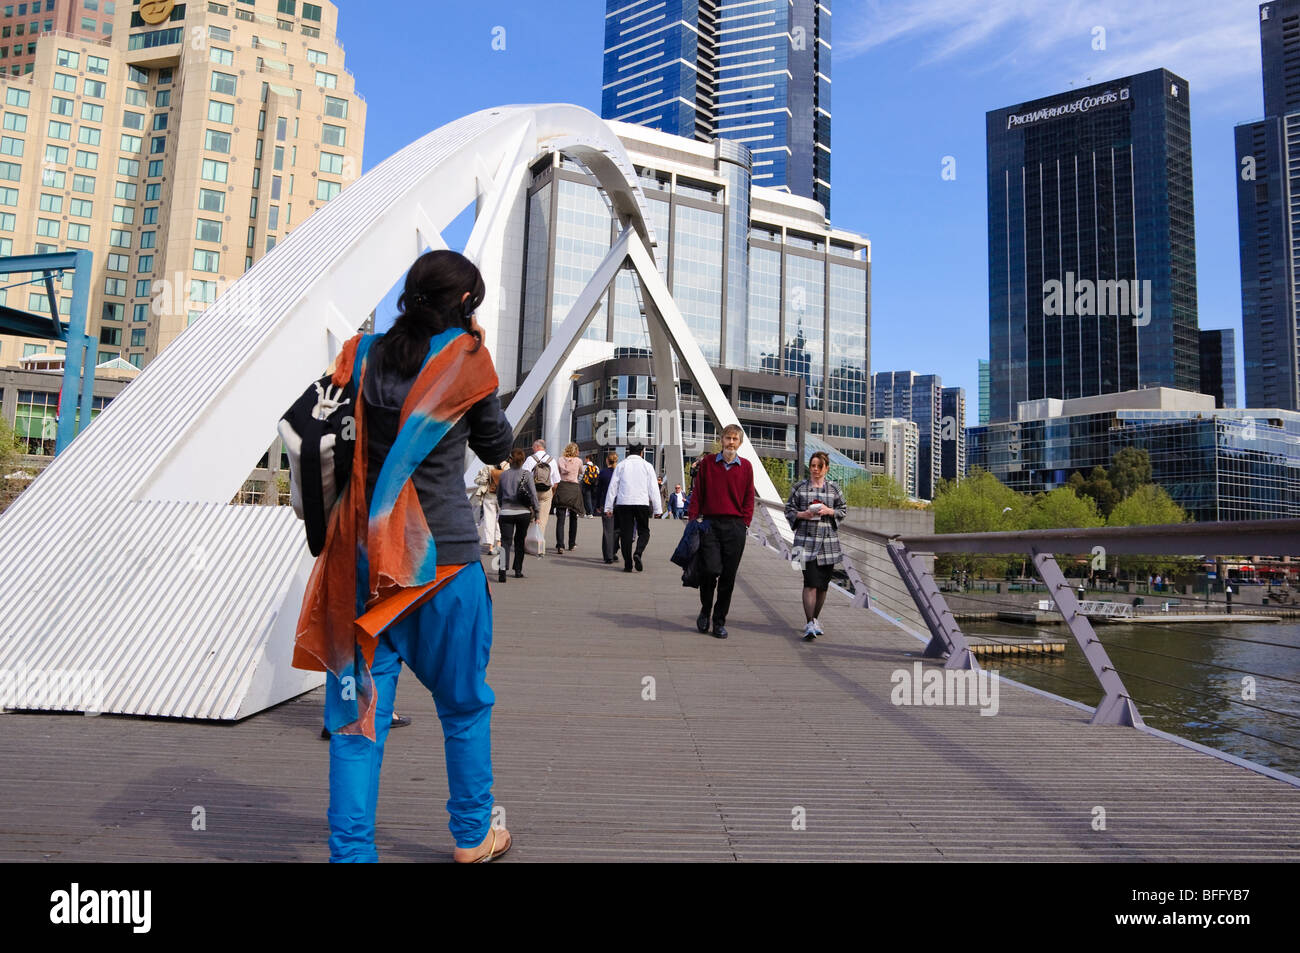 Migrant crossing a pedestrian bridge. - Stock Image